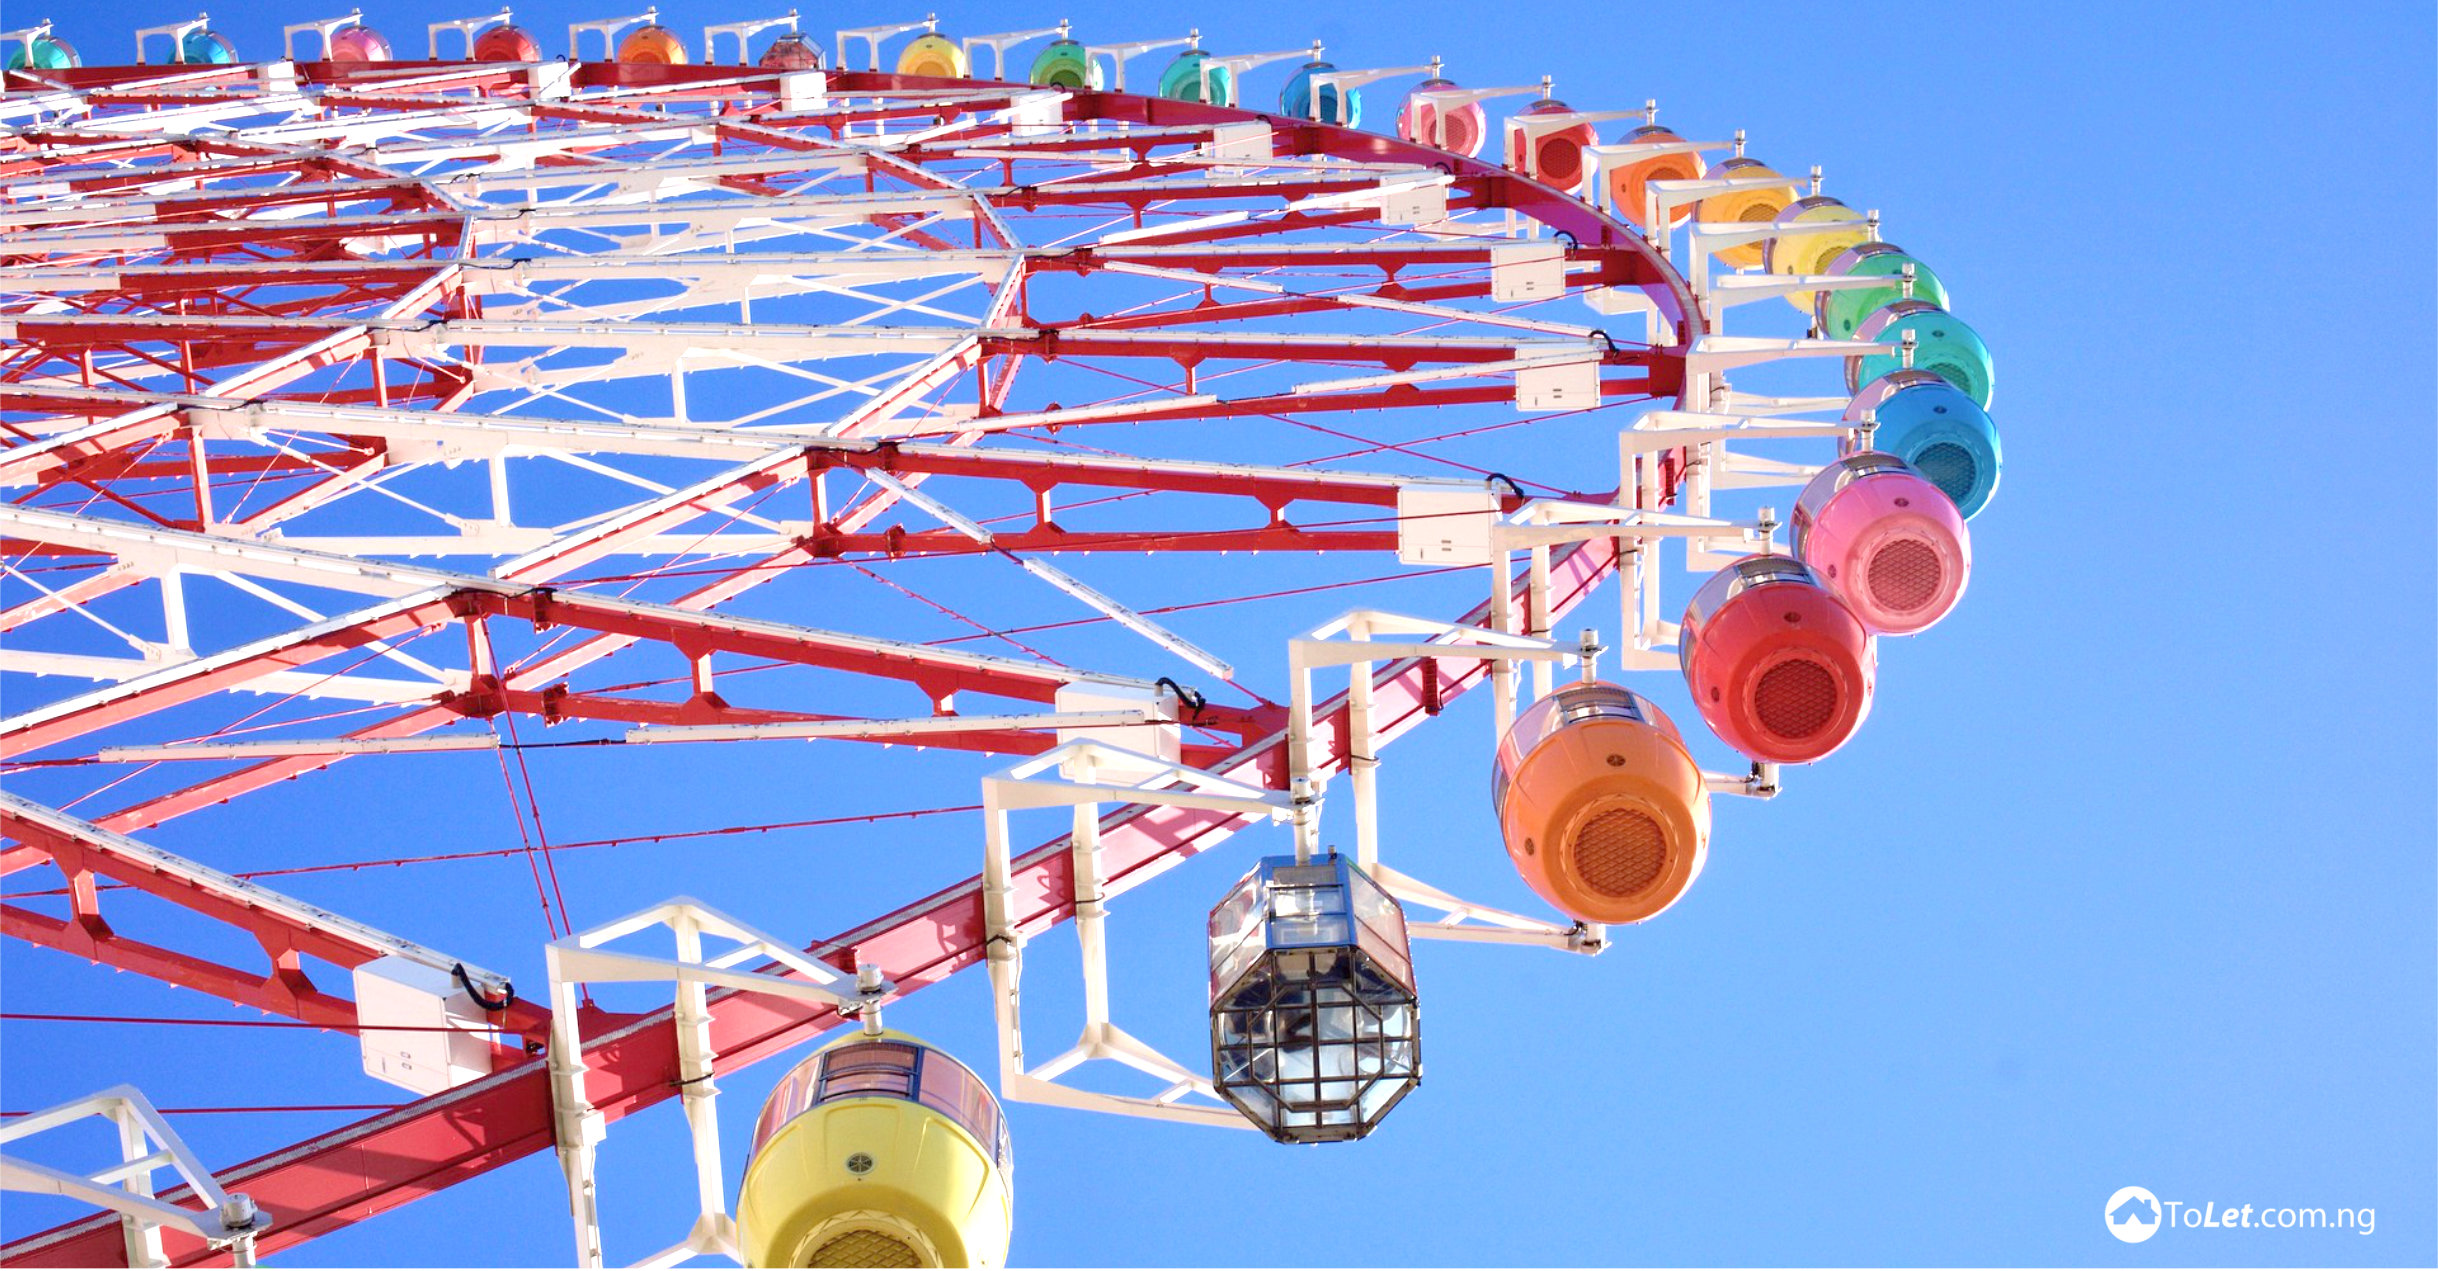 Amusement Parks And Recreation Centres In Port Harcourt Propertypro Insider